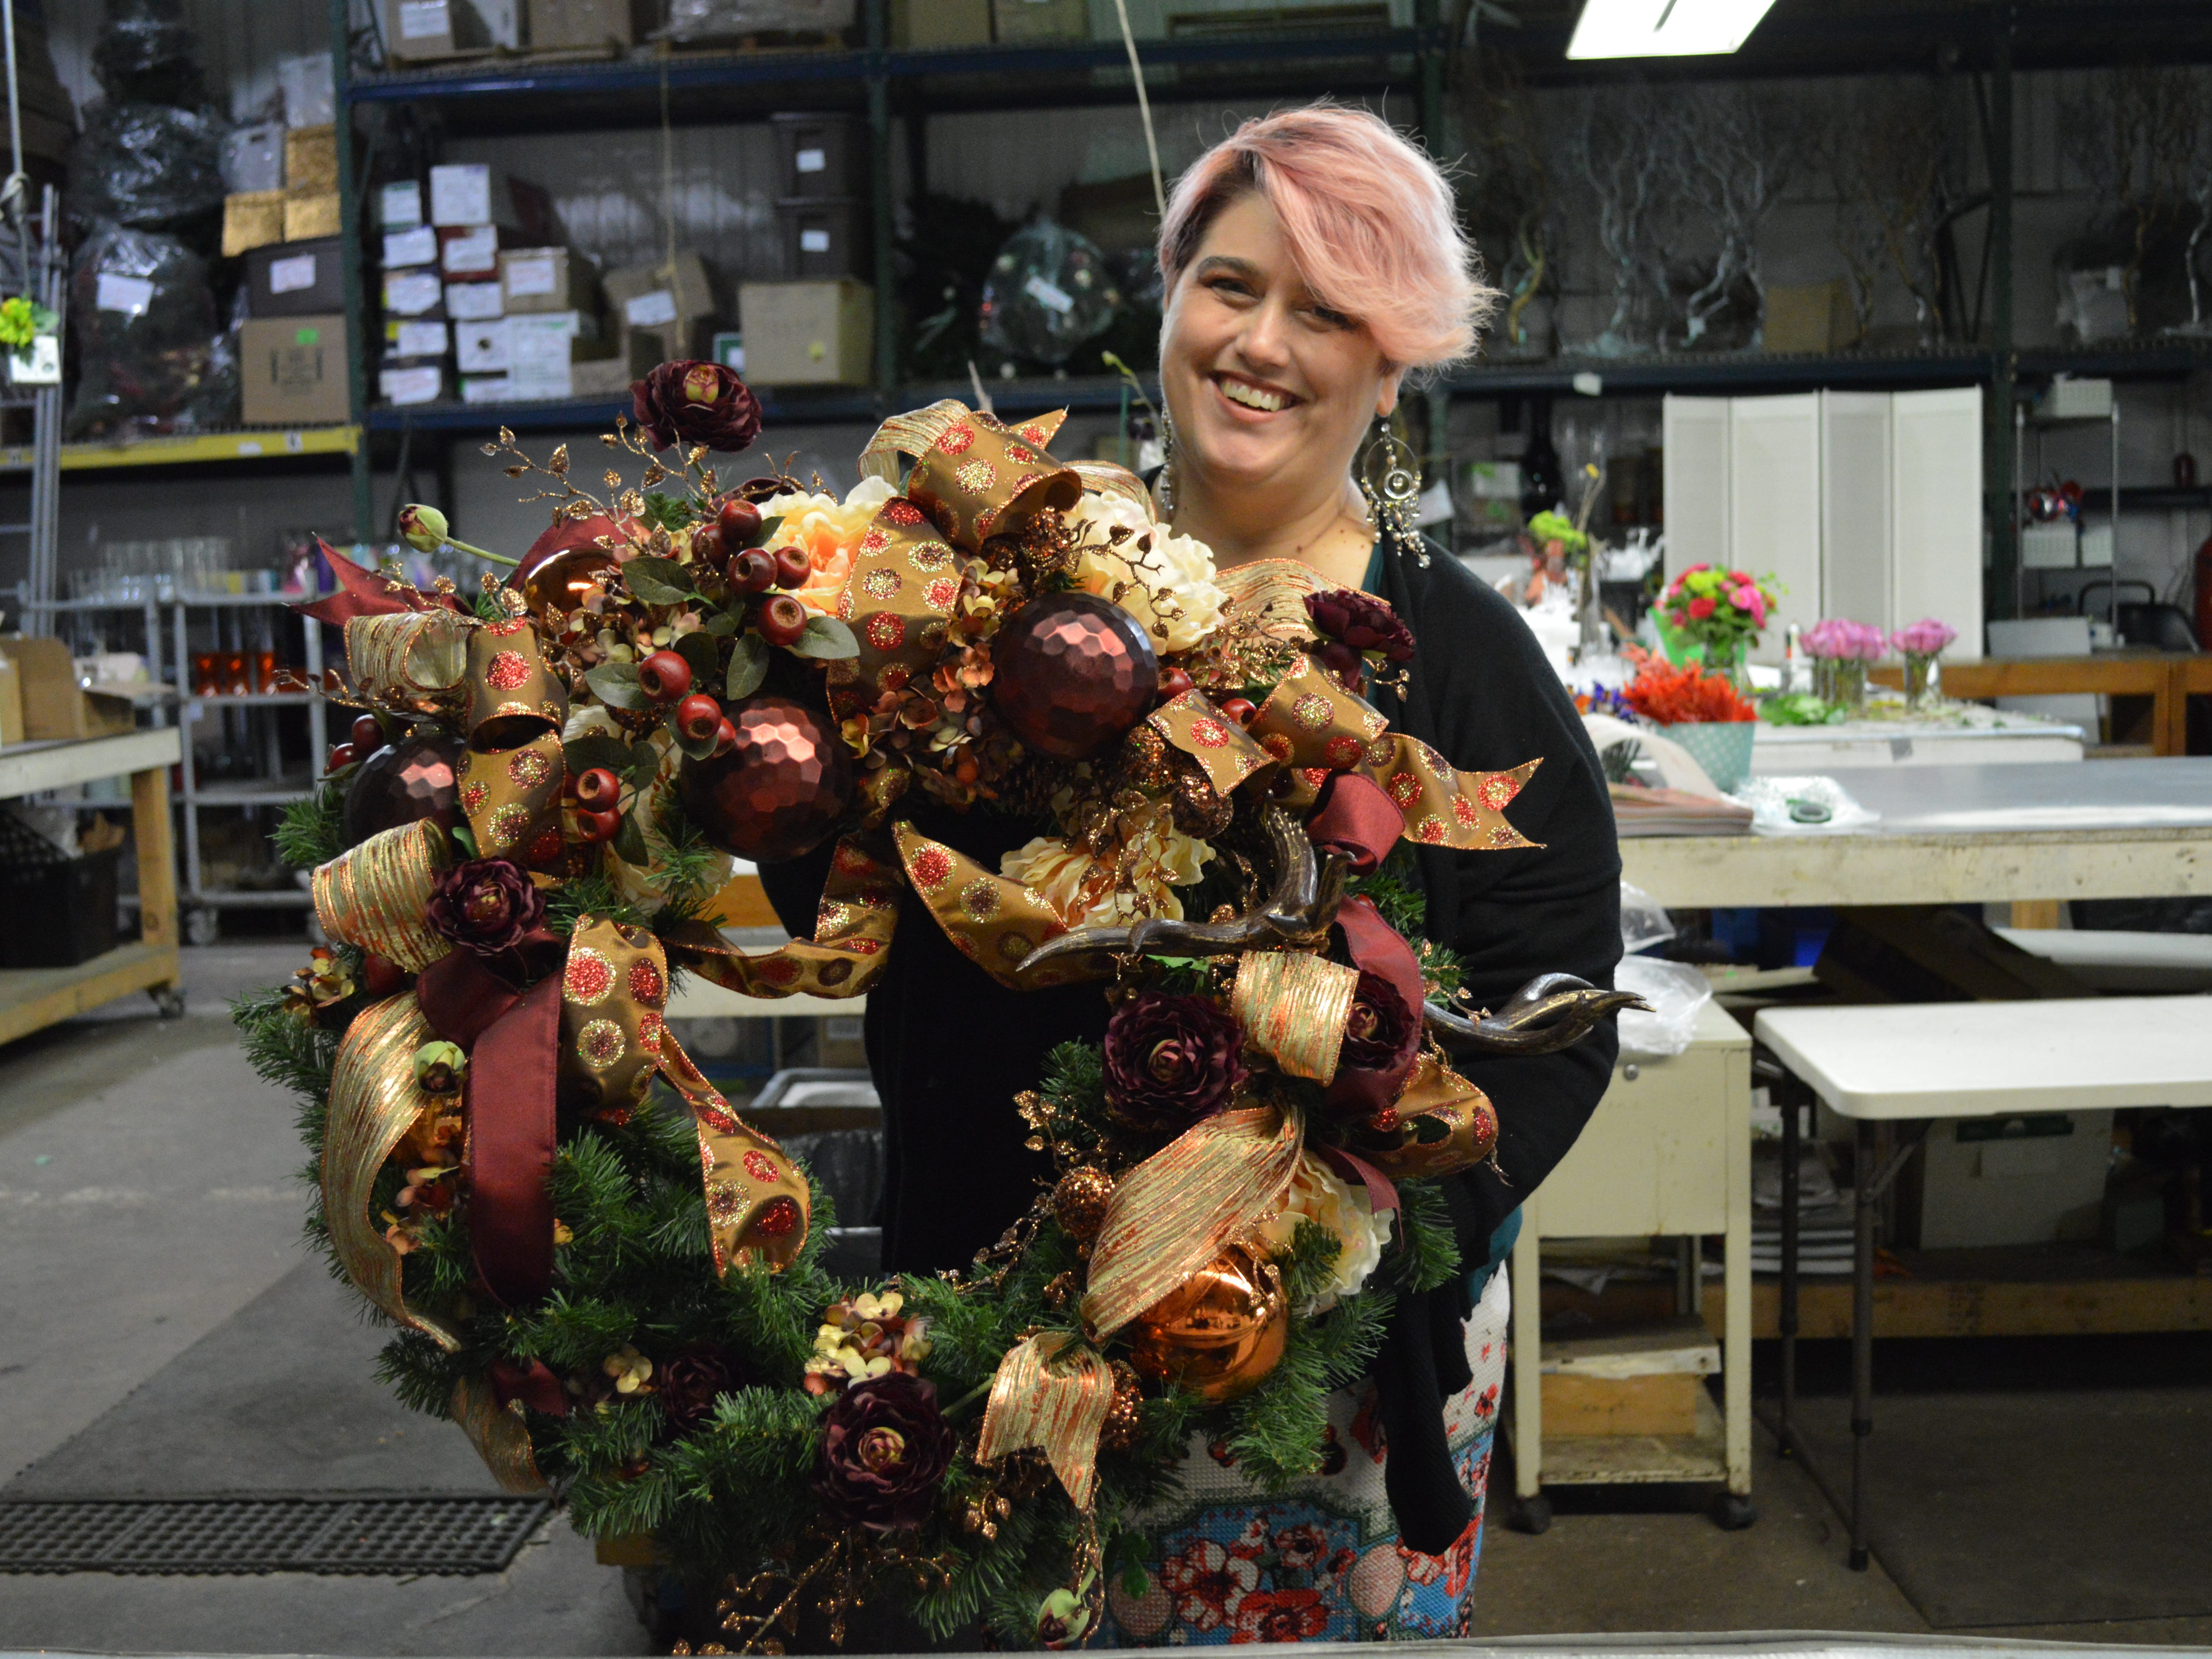 Kimberlee Grob has worked at Locker's Florist for 11 years.